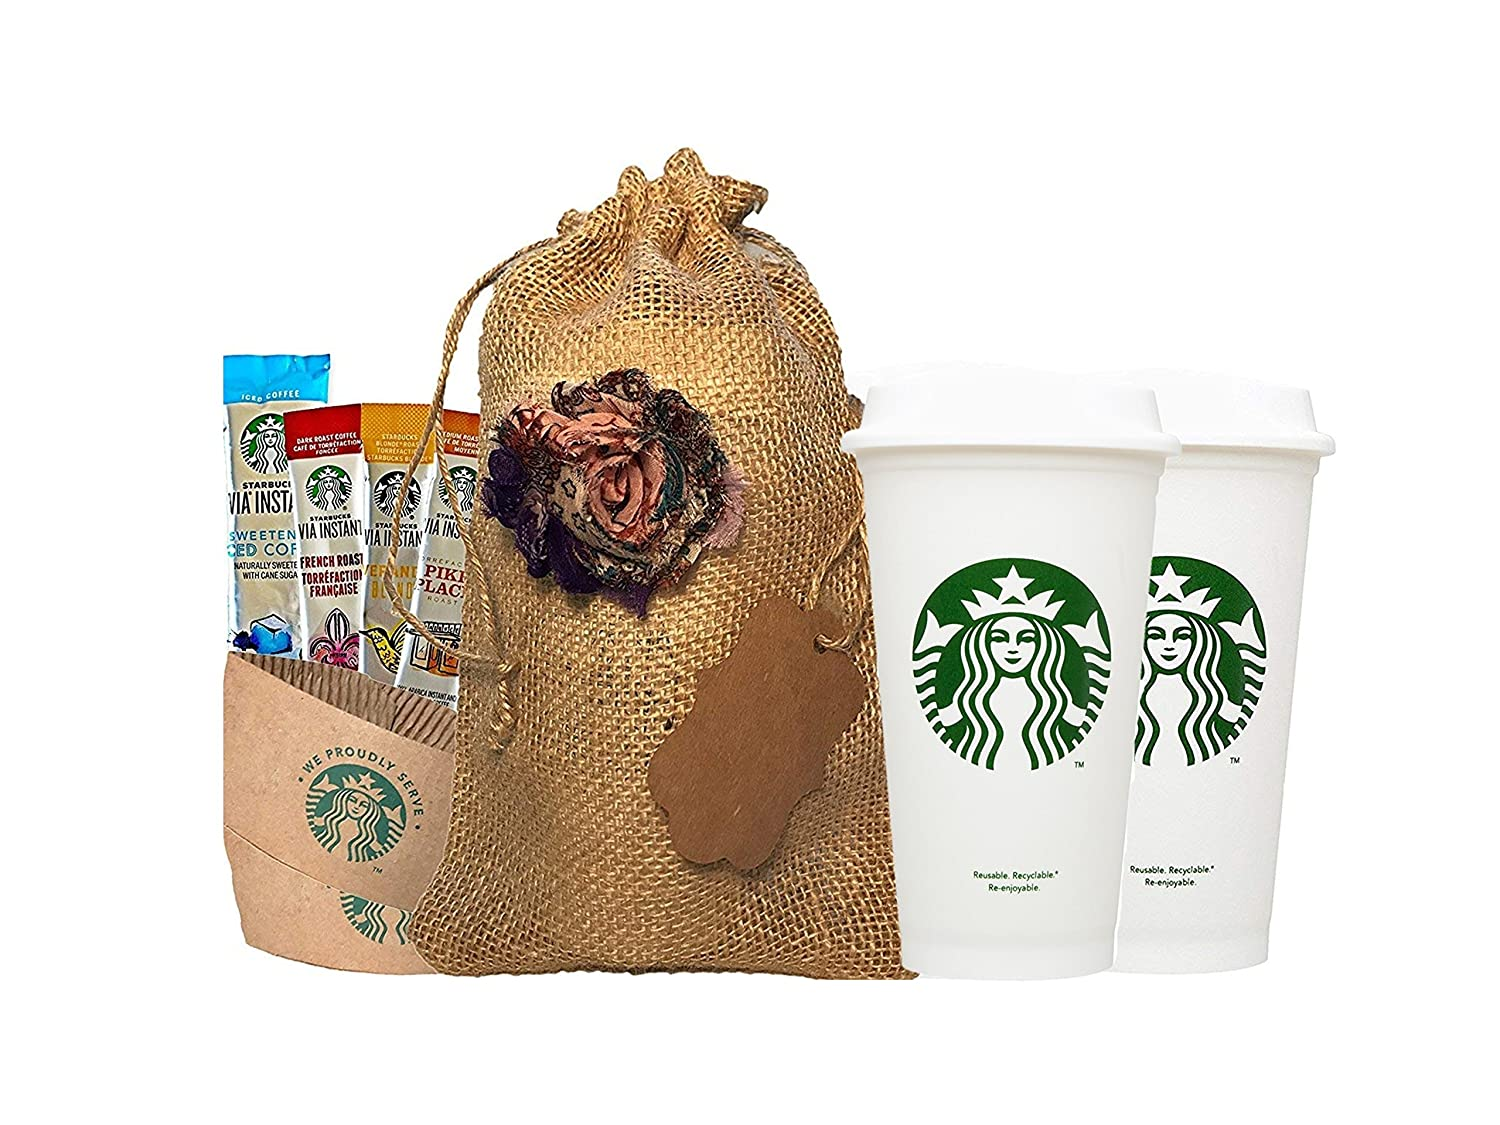 starbucks travel coffee gift set